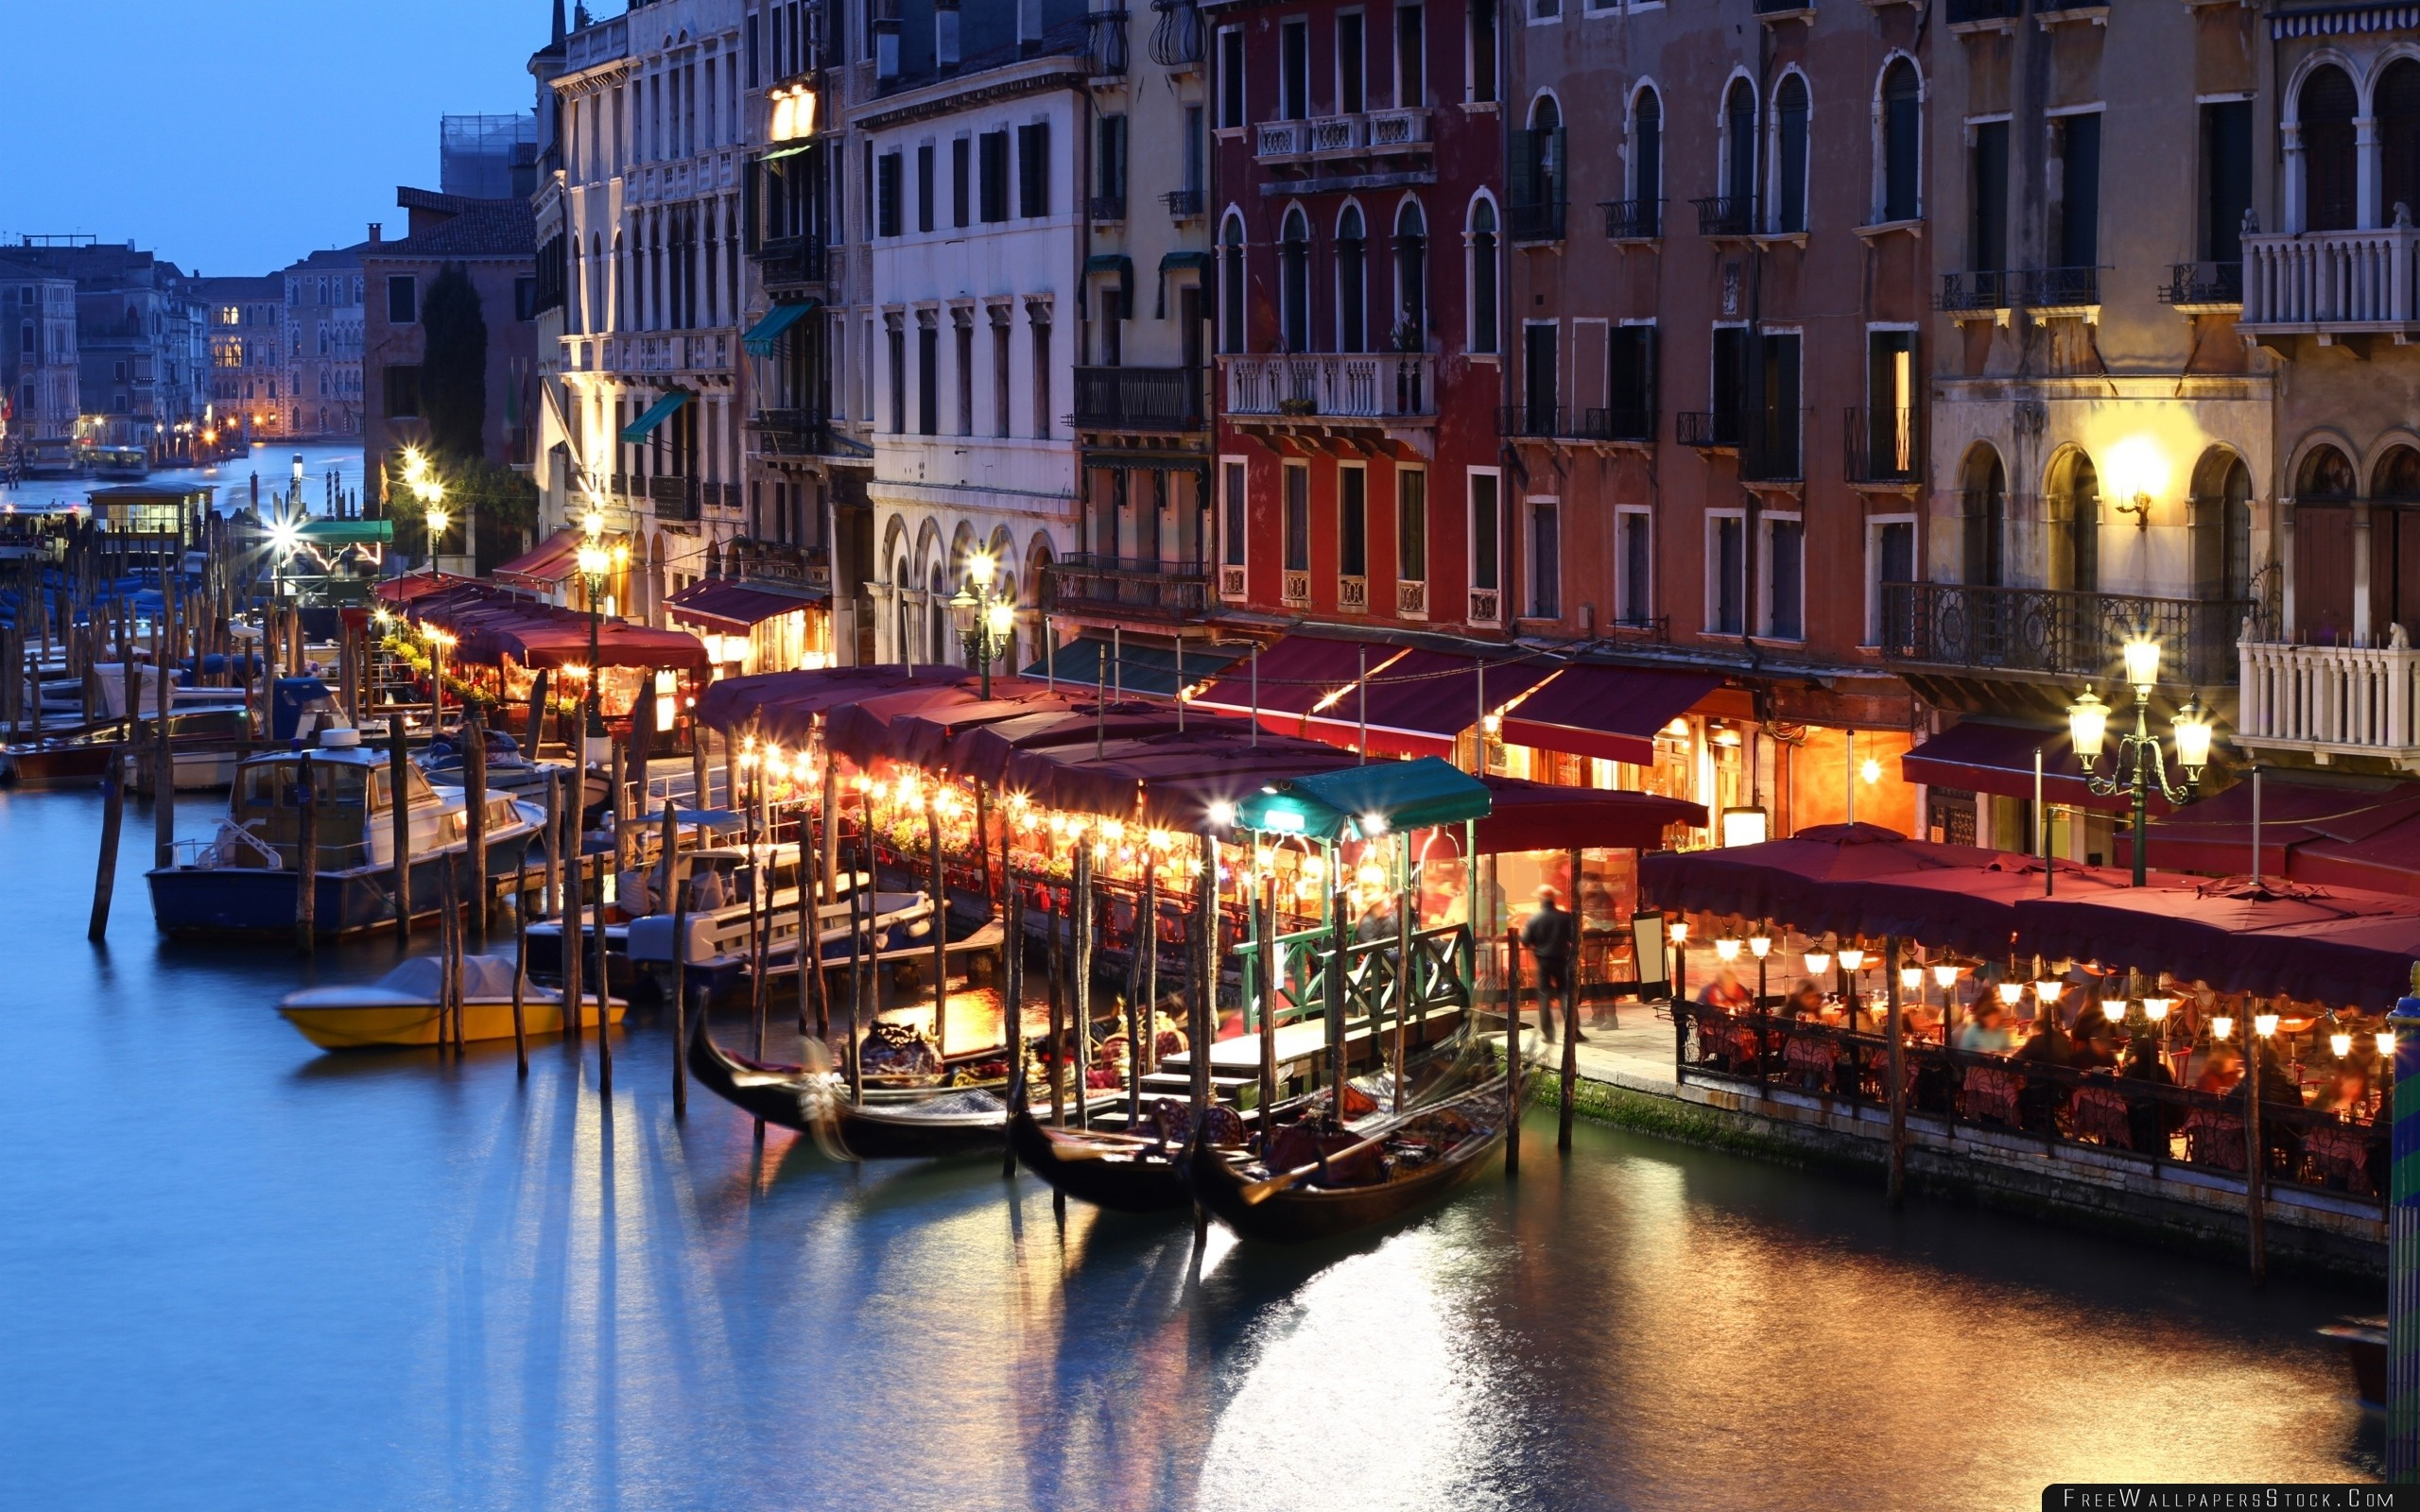 Download Free Wallpaper Venice Italy Building House Evening Cafe Lights People Canal Gondola Boats